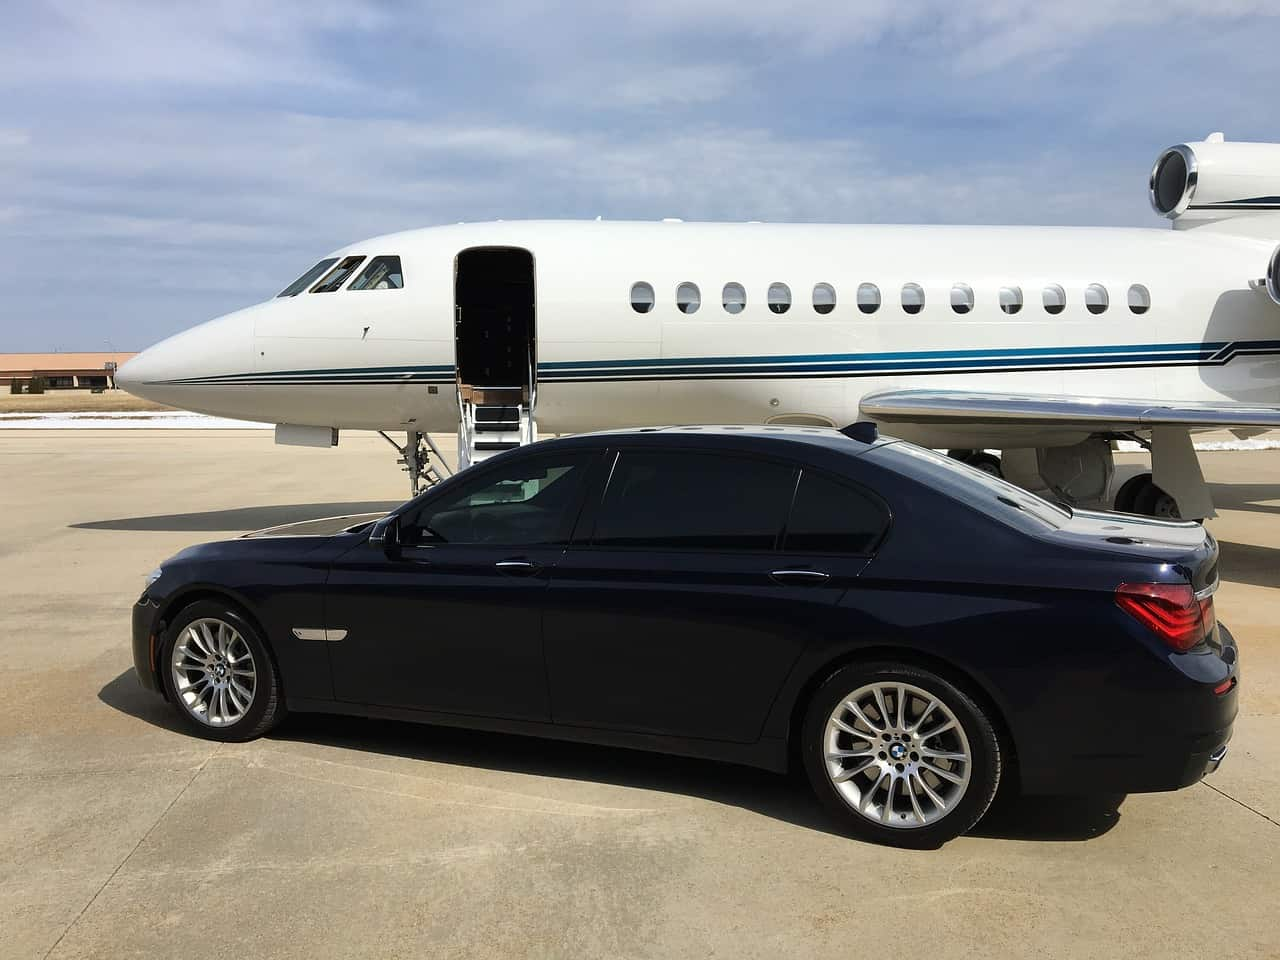 Consider hiring a private jet for business travel.